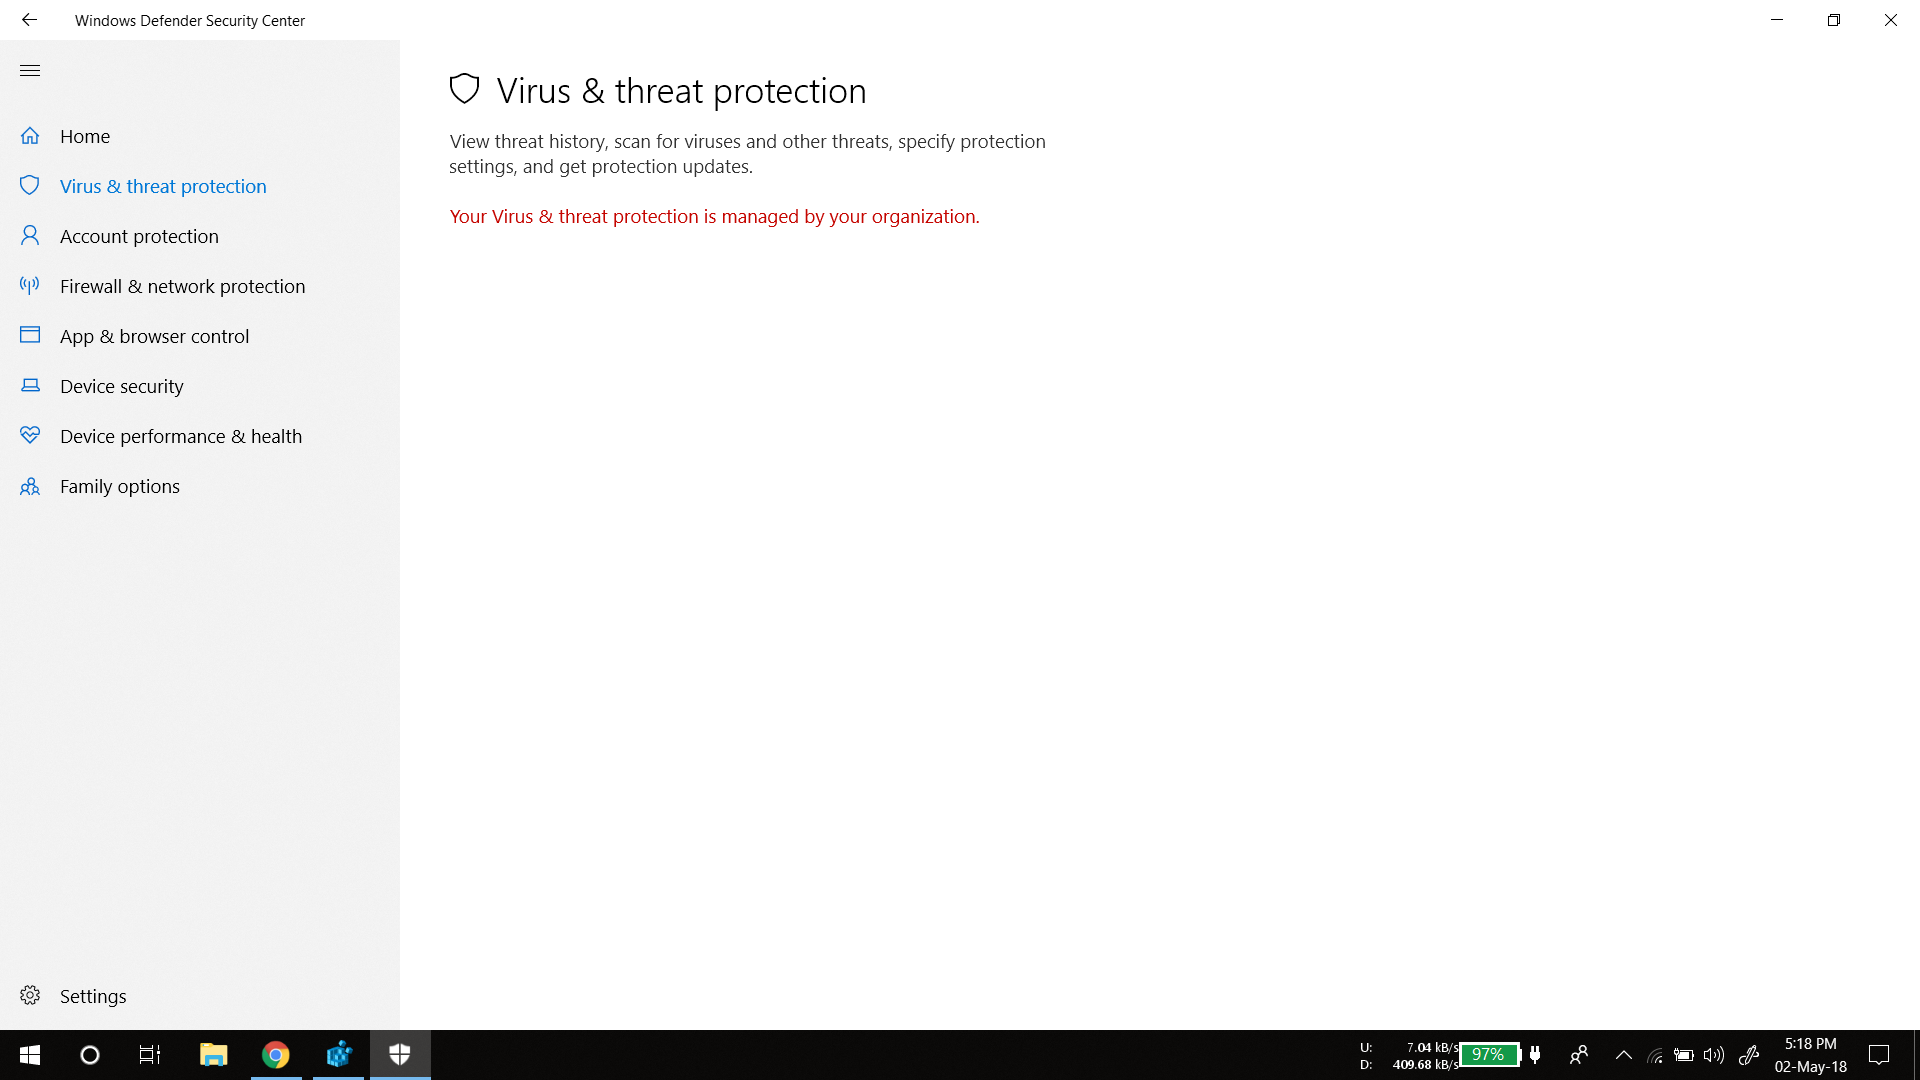 'Your Virus & threat protection is managed by your organization' repeat problem 6408d6ee-1c20-4c97-bf4e-3622cf2cee50?upload=true.png